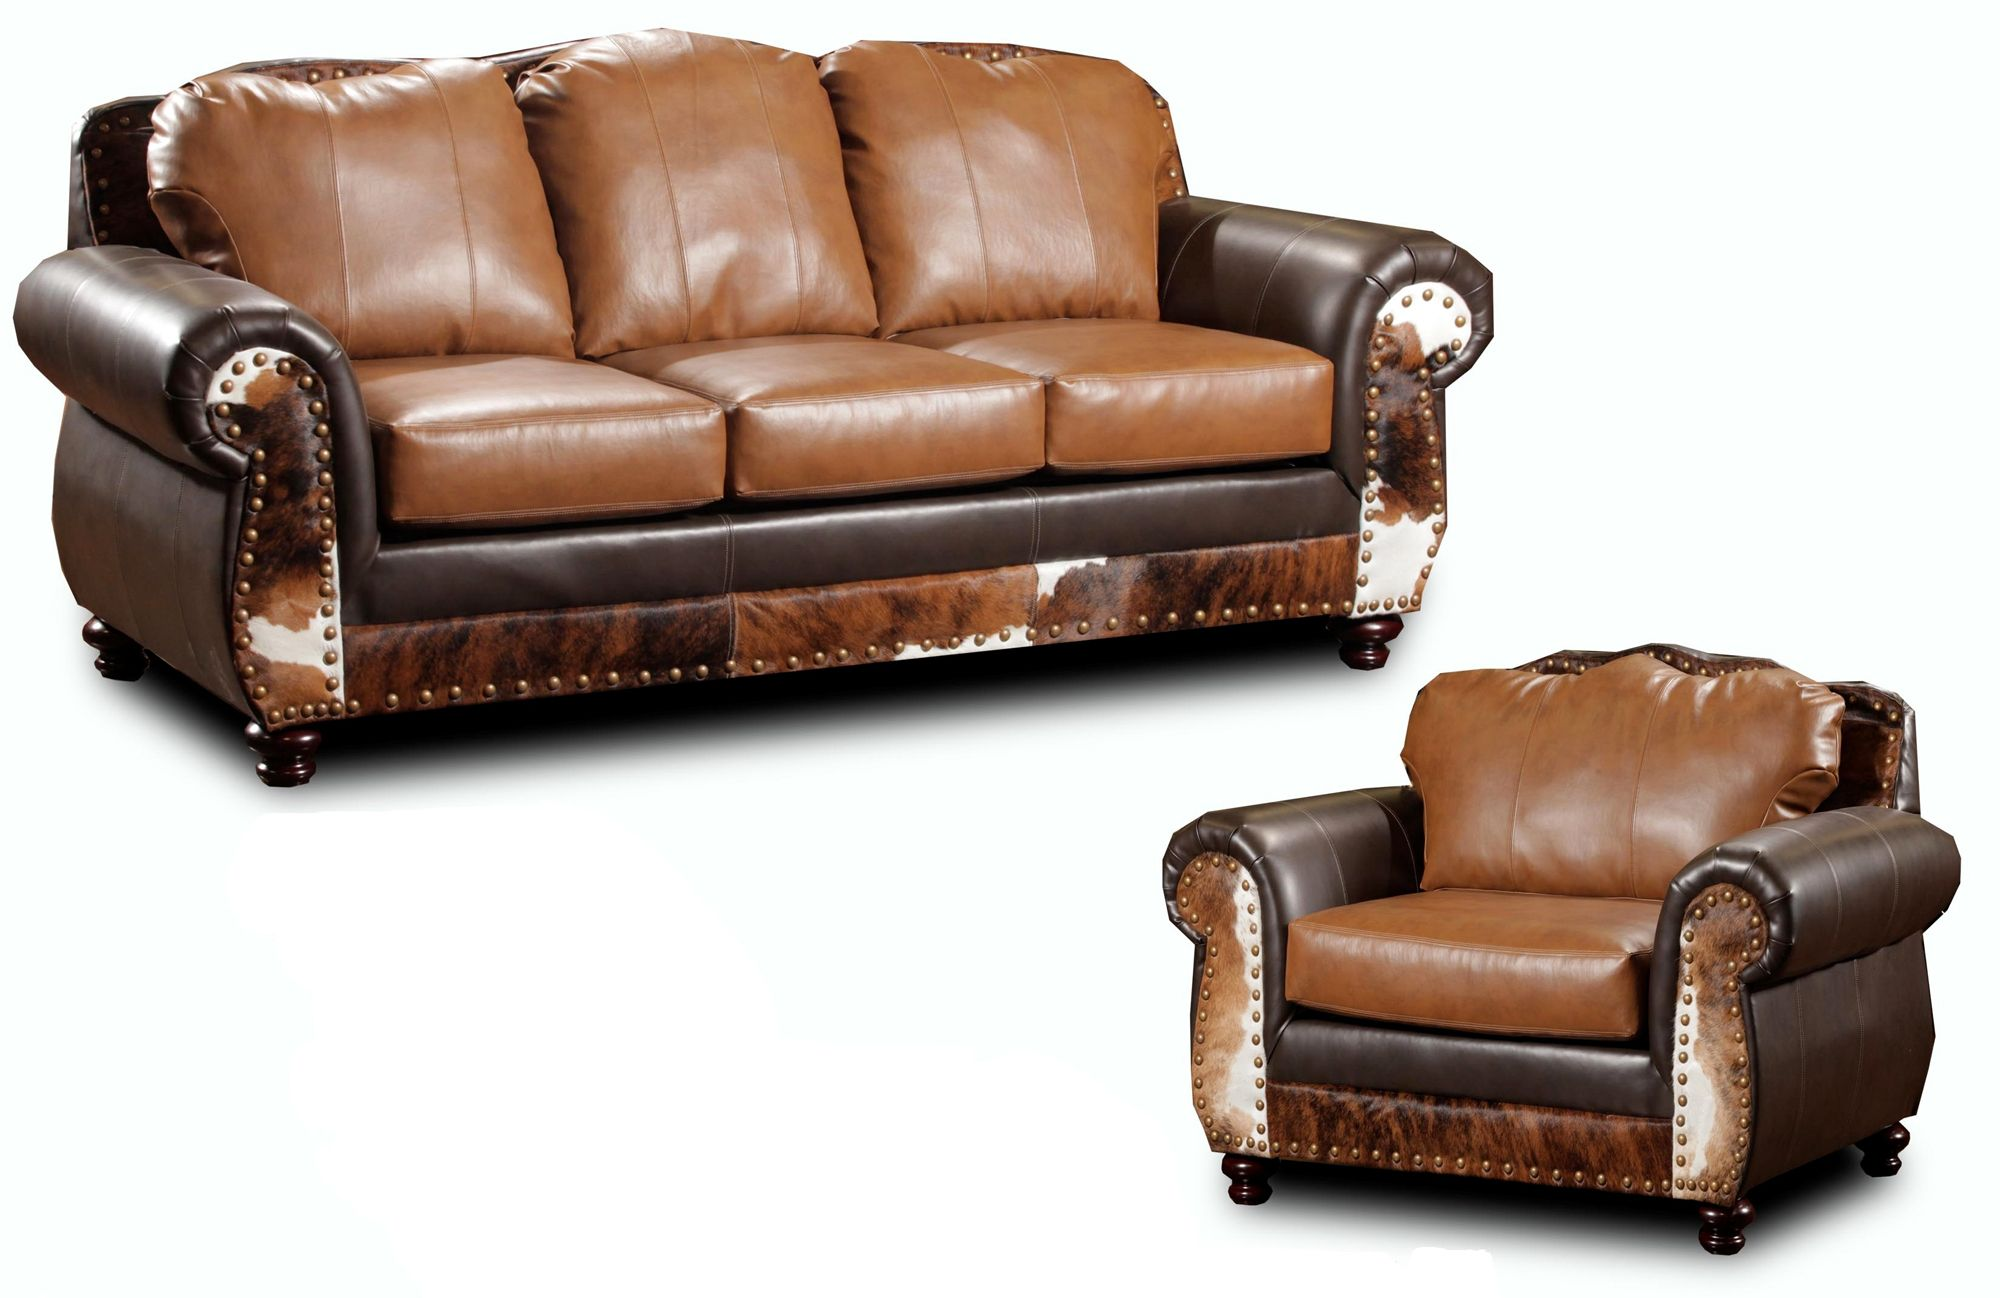 Rustic Leather Furniture | Denver Rustic Lodge Leather Sofa And Chair   155869/155834   Verona